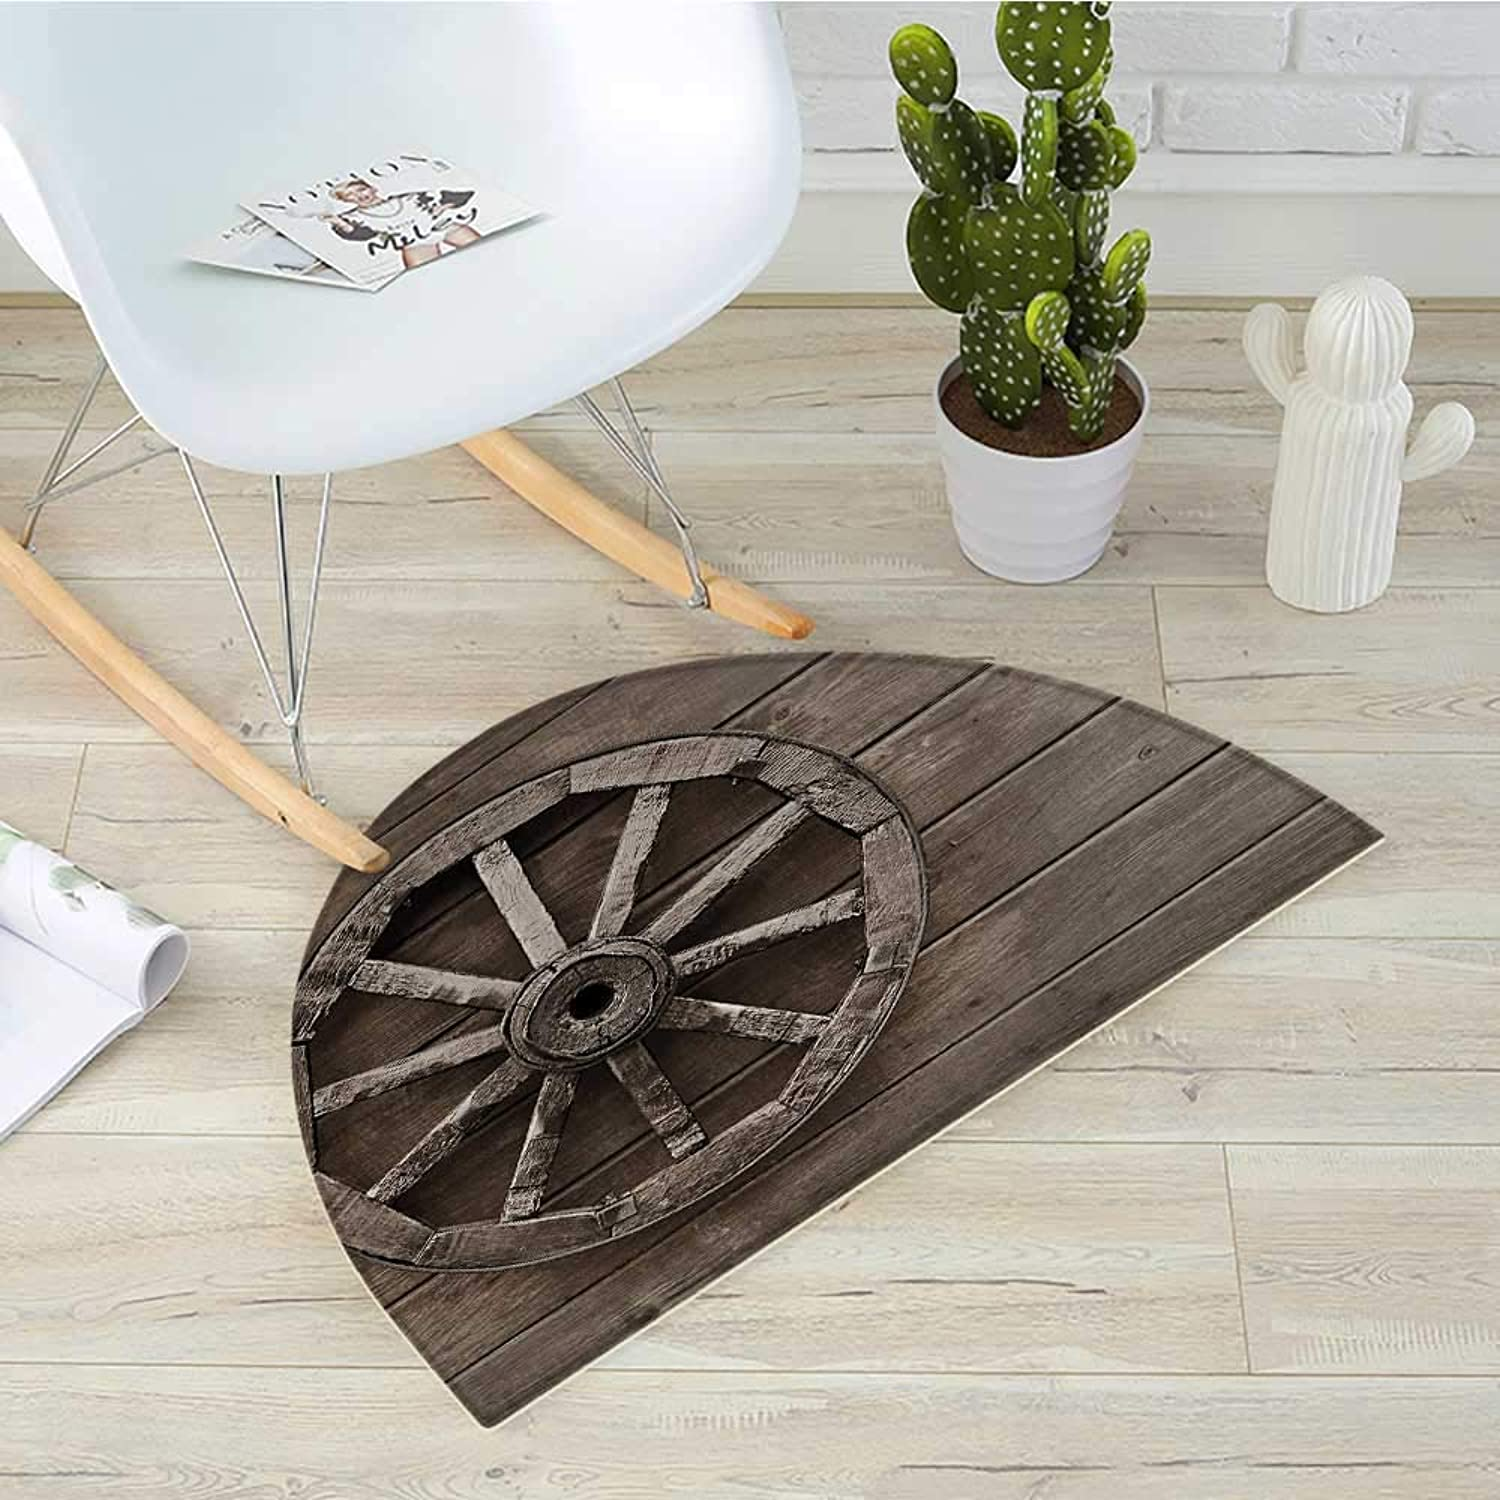 Barn Wood Wagon Wheel Half Round Door mats Antique Aged Carriage Vehicle Wheel on The Wall of Barn Grunge Western Bathroom Mat H 39.3  xD 59  Umber